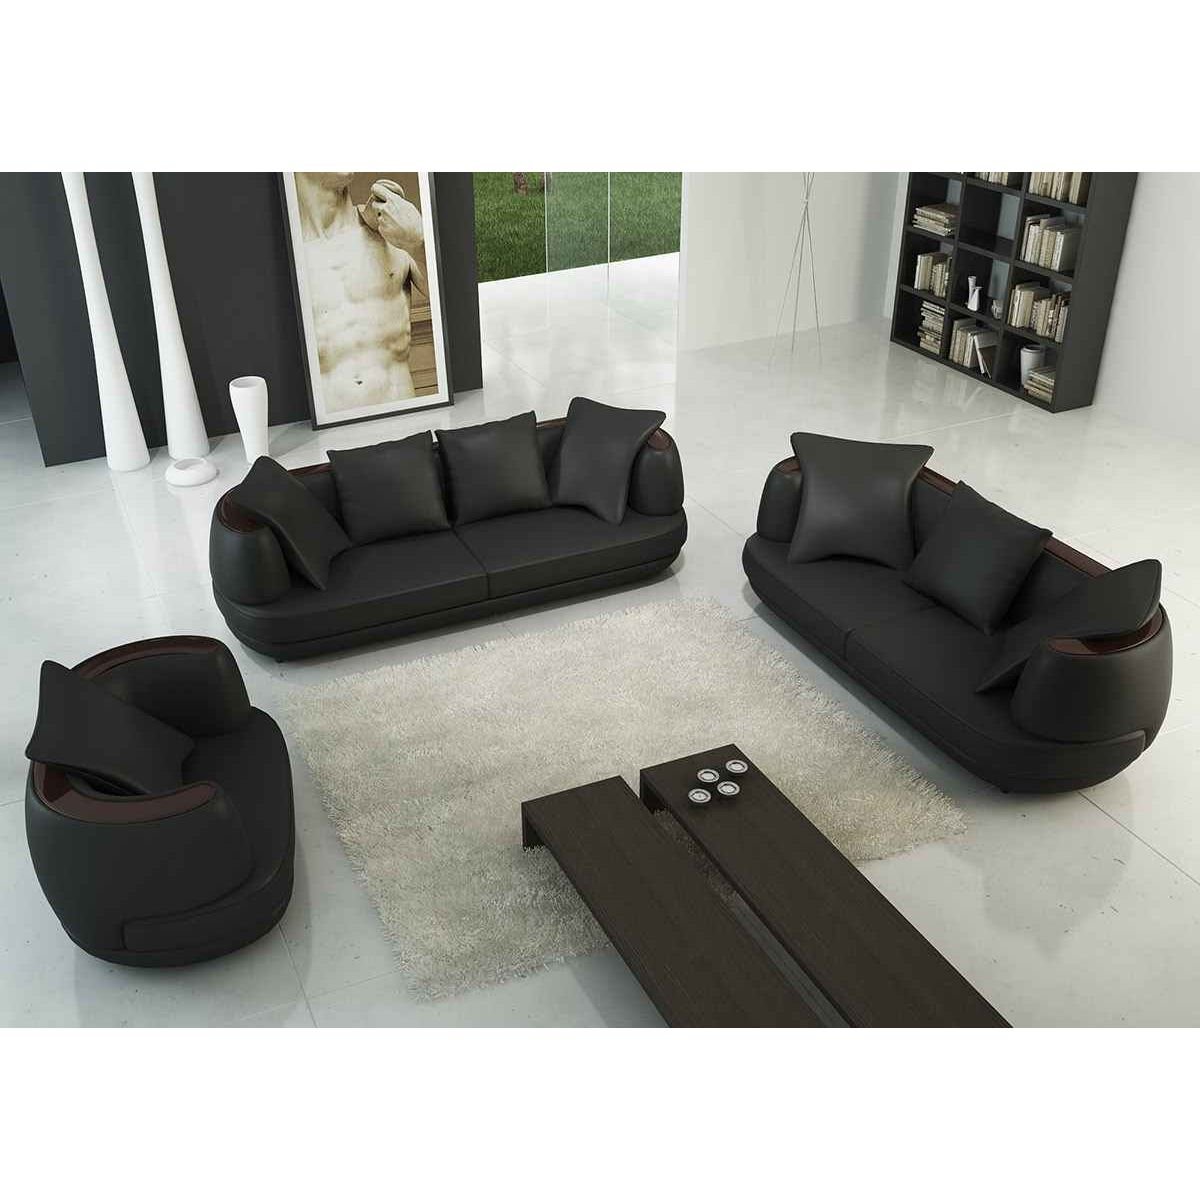 Deco in paris ensemble canape 3 2 1 places noir en cuir - Canape 2 places et 3 places ...